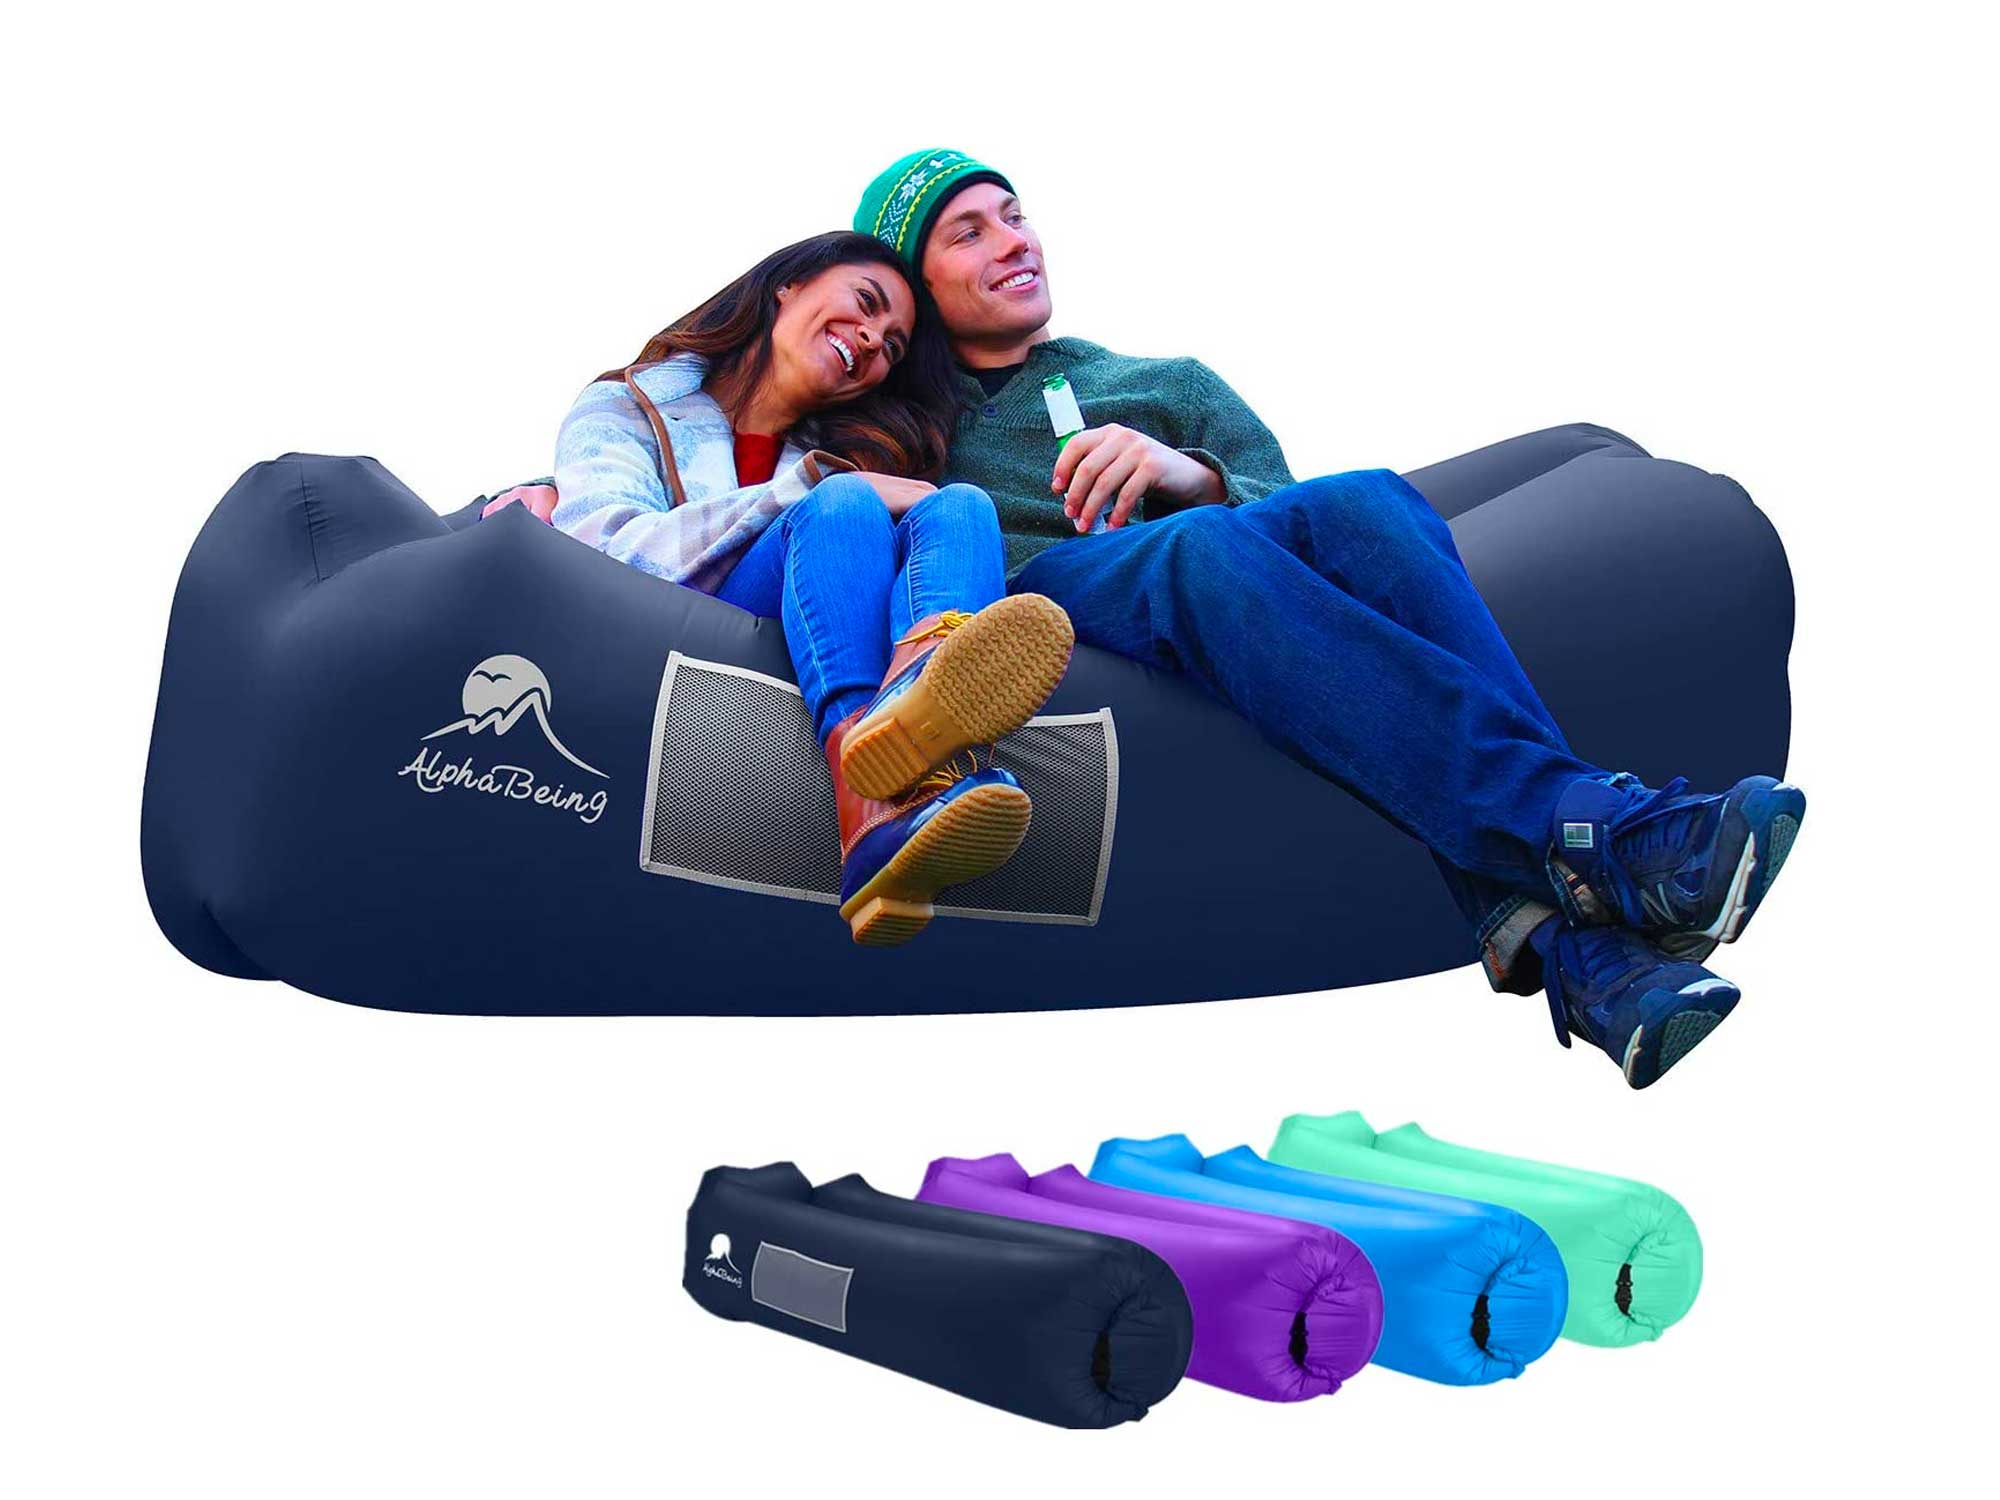 AlphaBeing Inflatable Lounger - Best Air Lounger for Traveling, Camping, Hiking - Ideal Inflatable Couch for Pool and Beach Parties